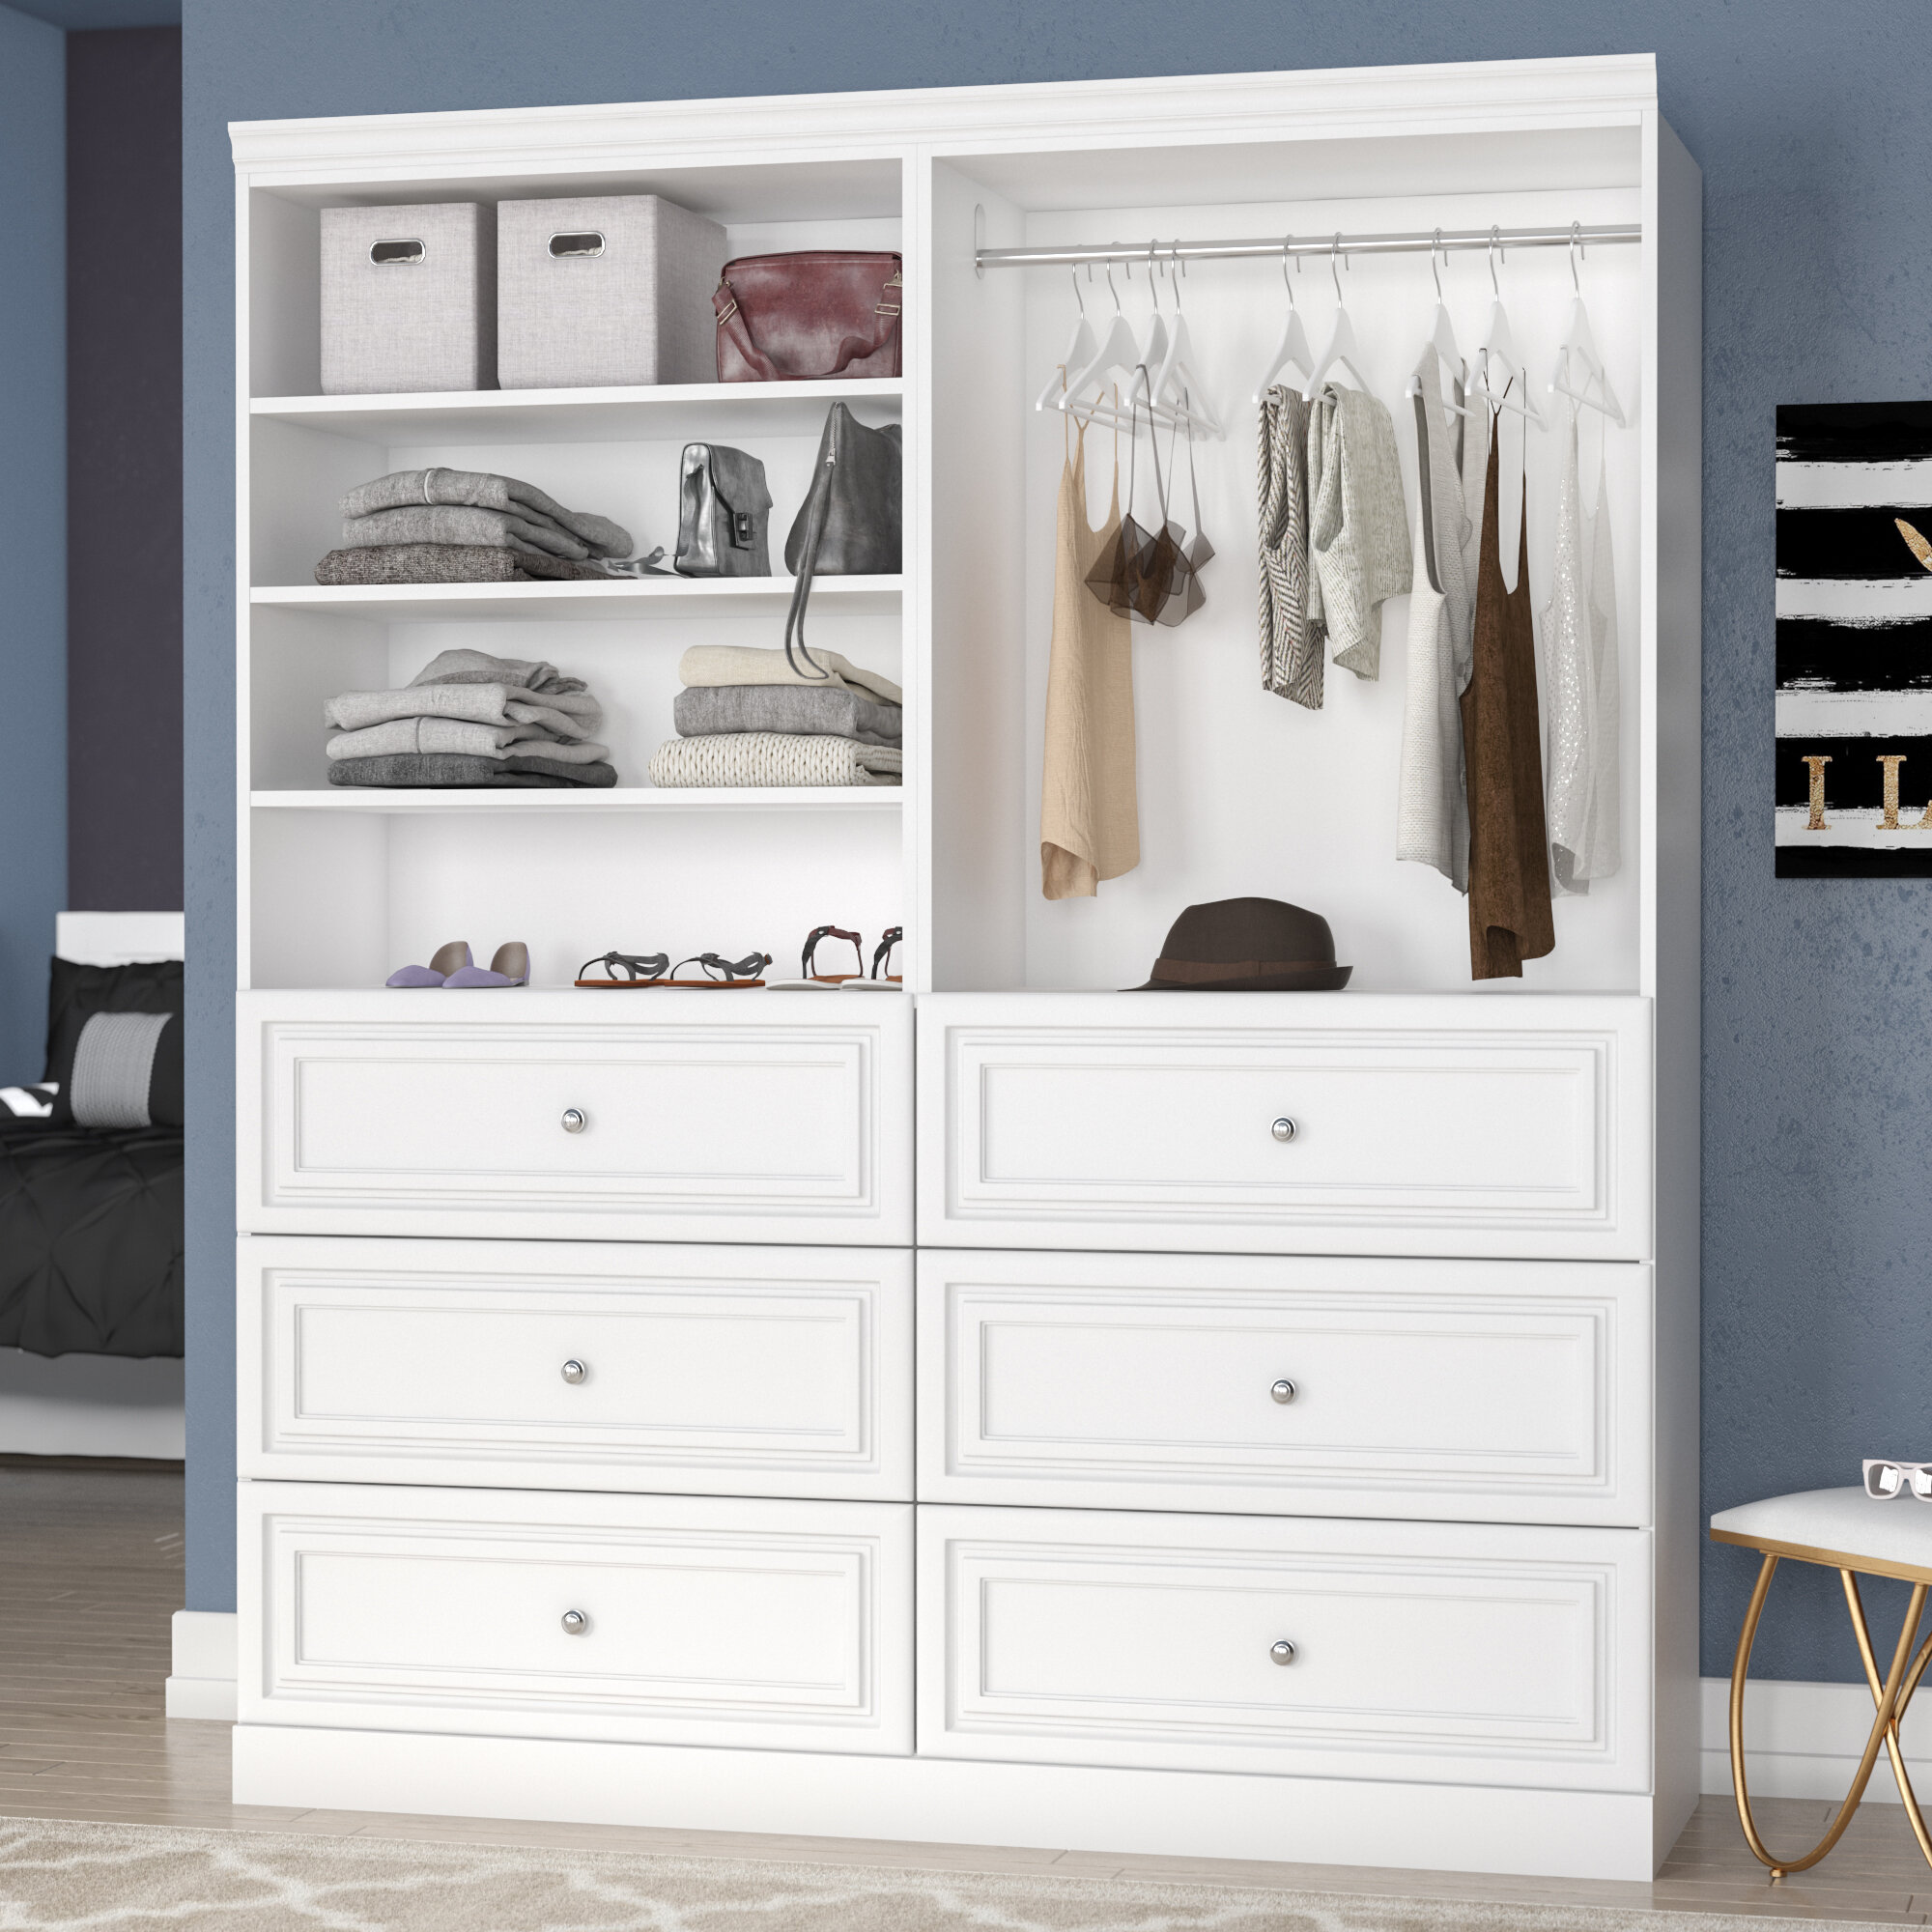 dc closet closets beyond md washington drawers welcome for va custom chest company to of